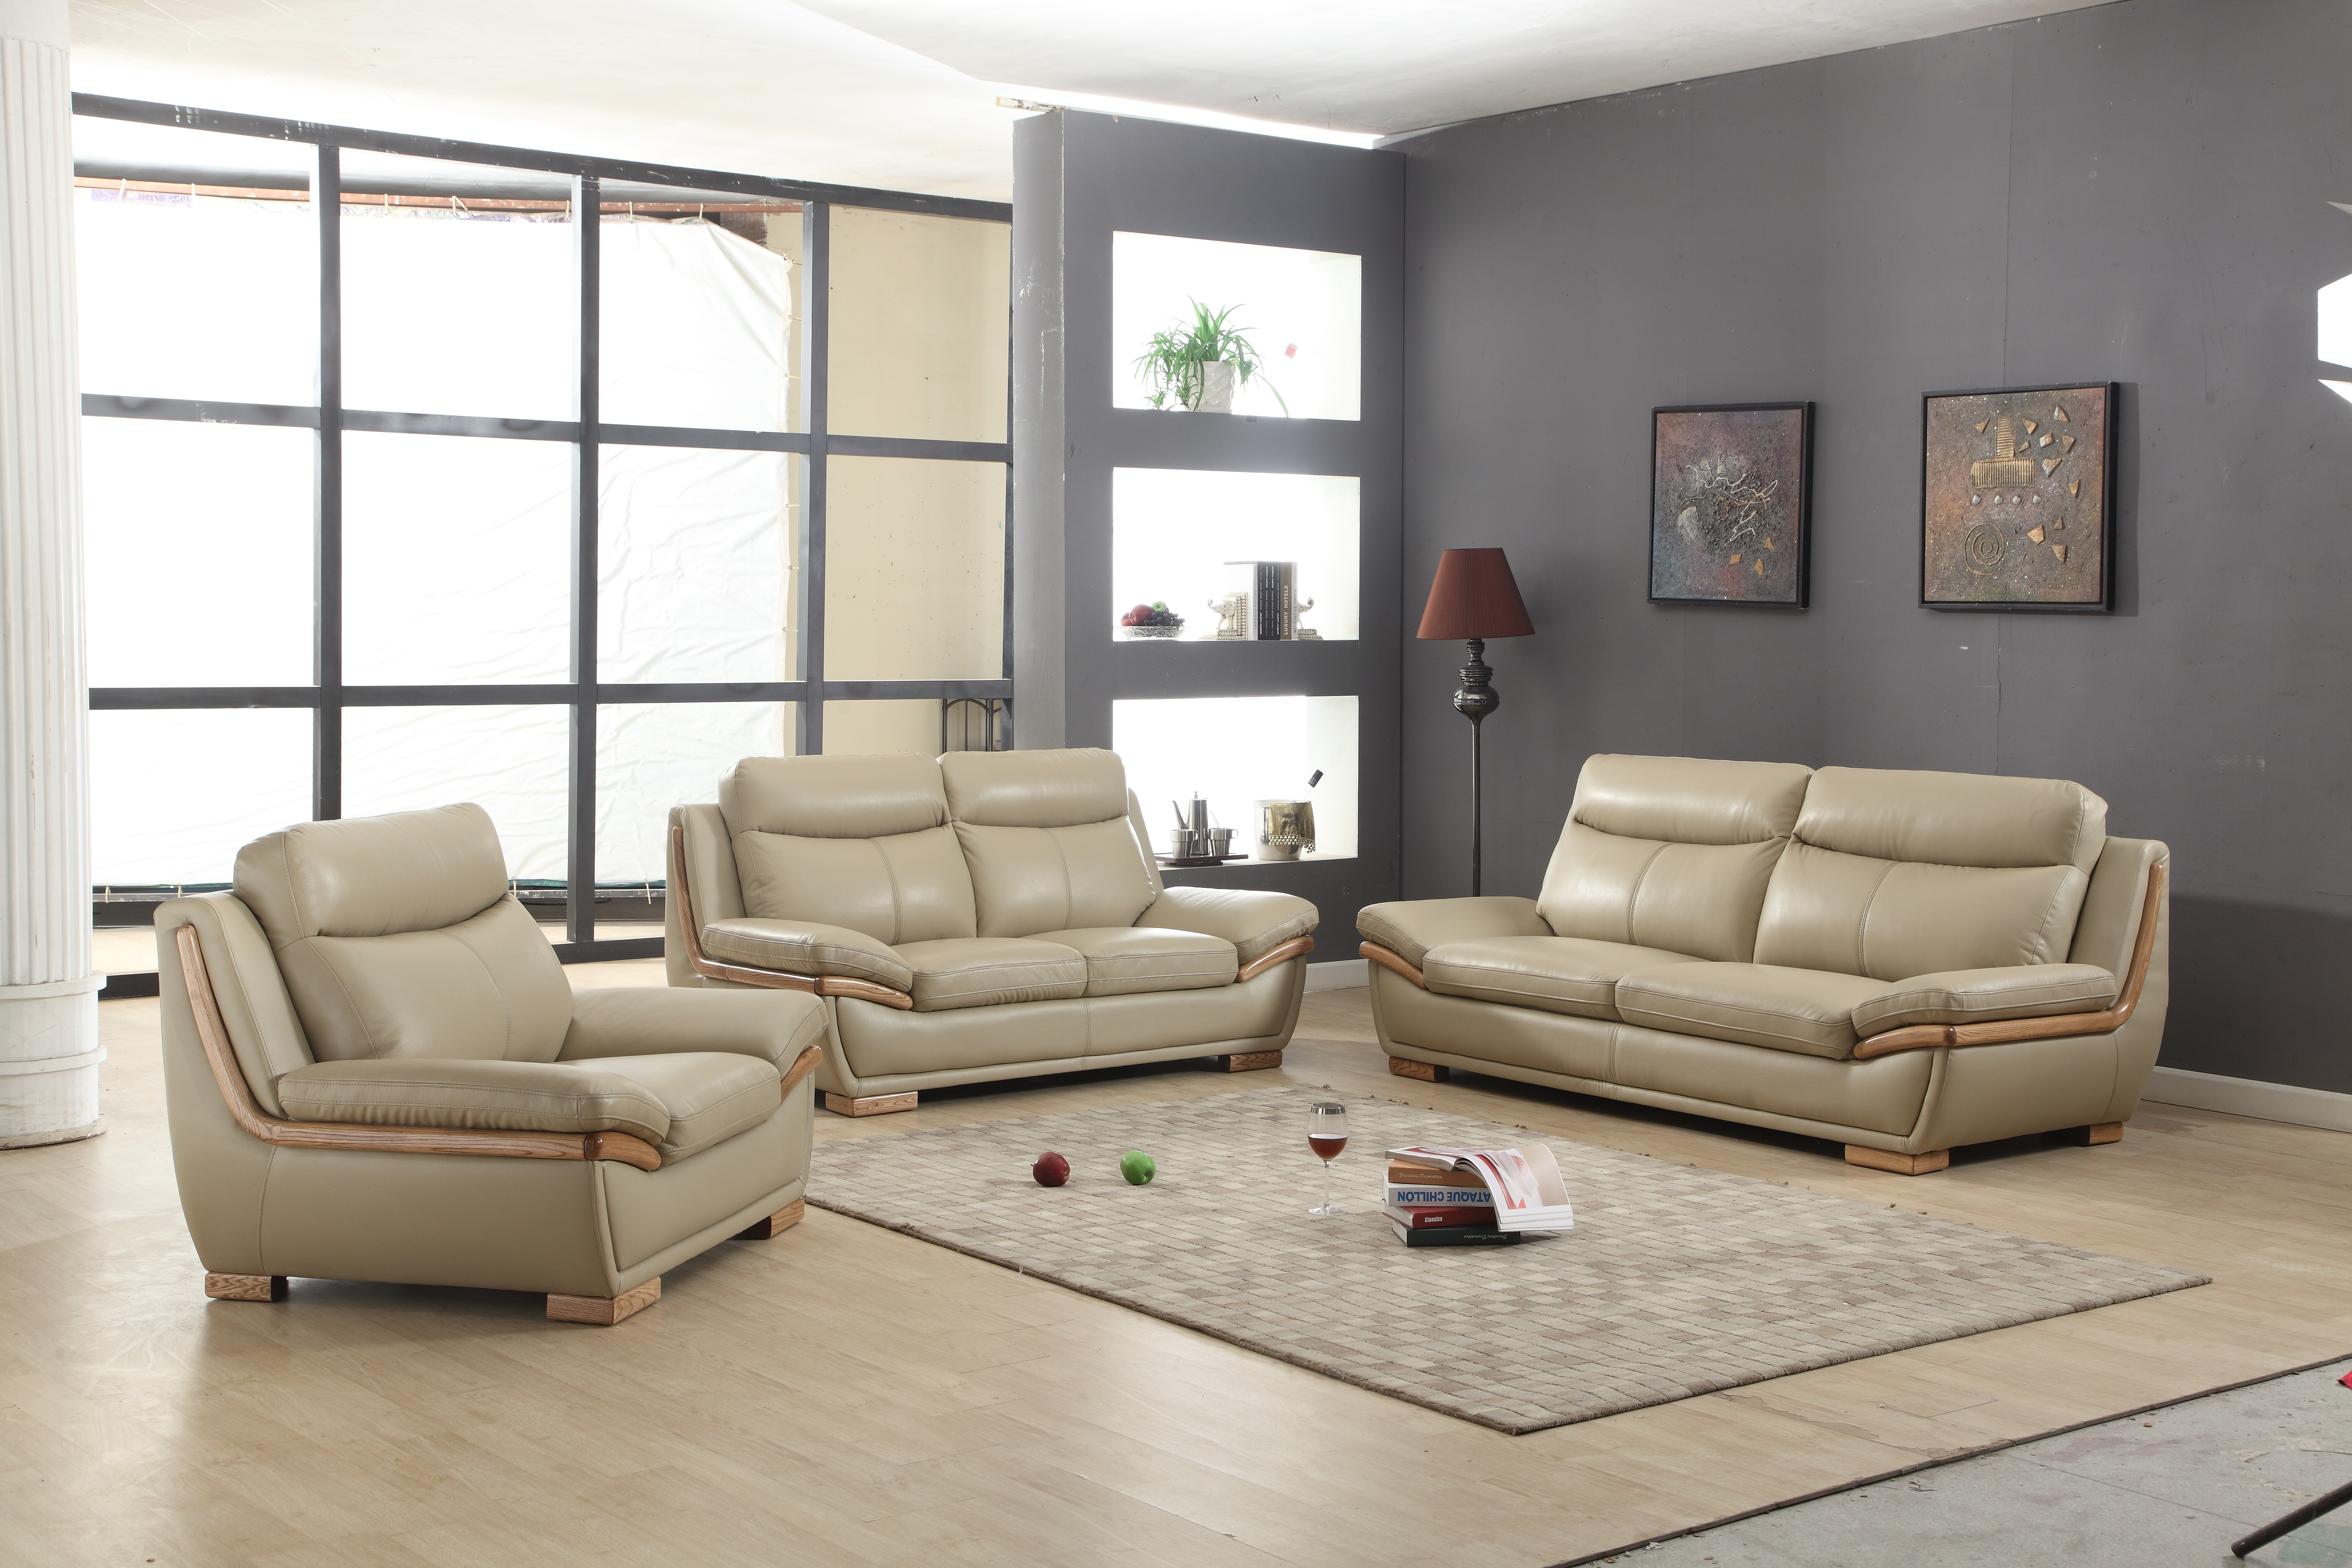 Corner L Shaped Light Brown Top Grain Leather Couch With Chaise.